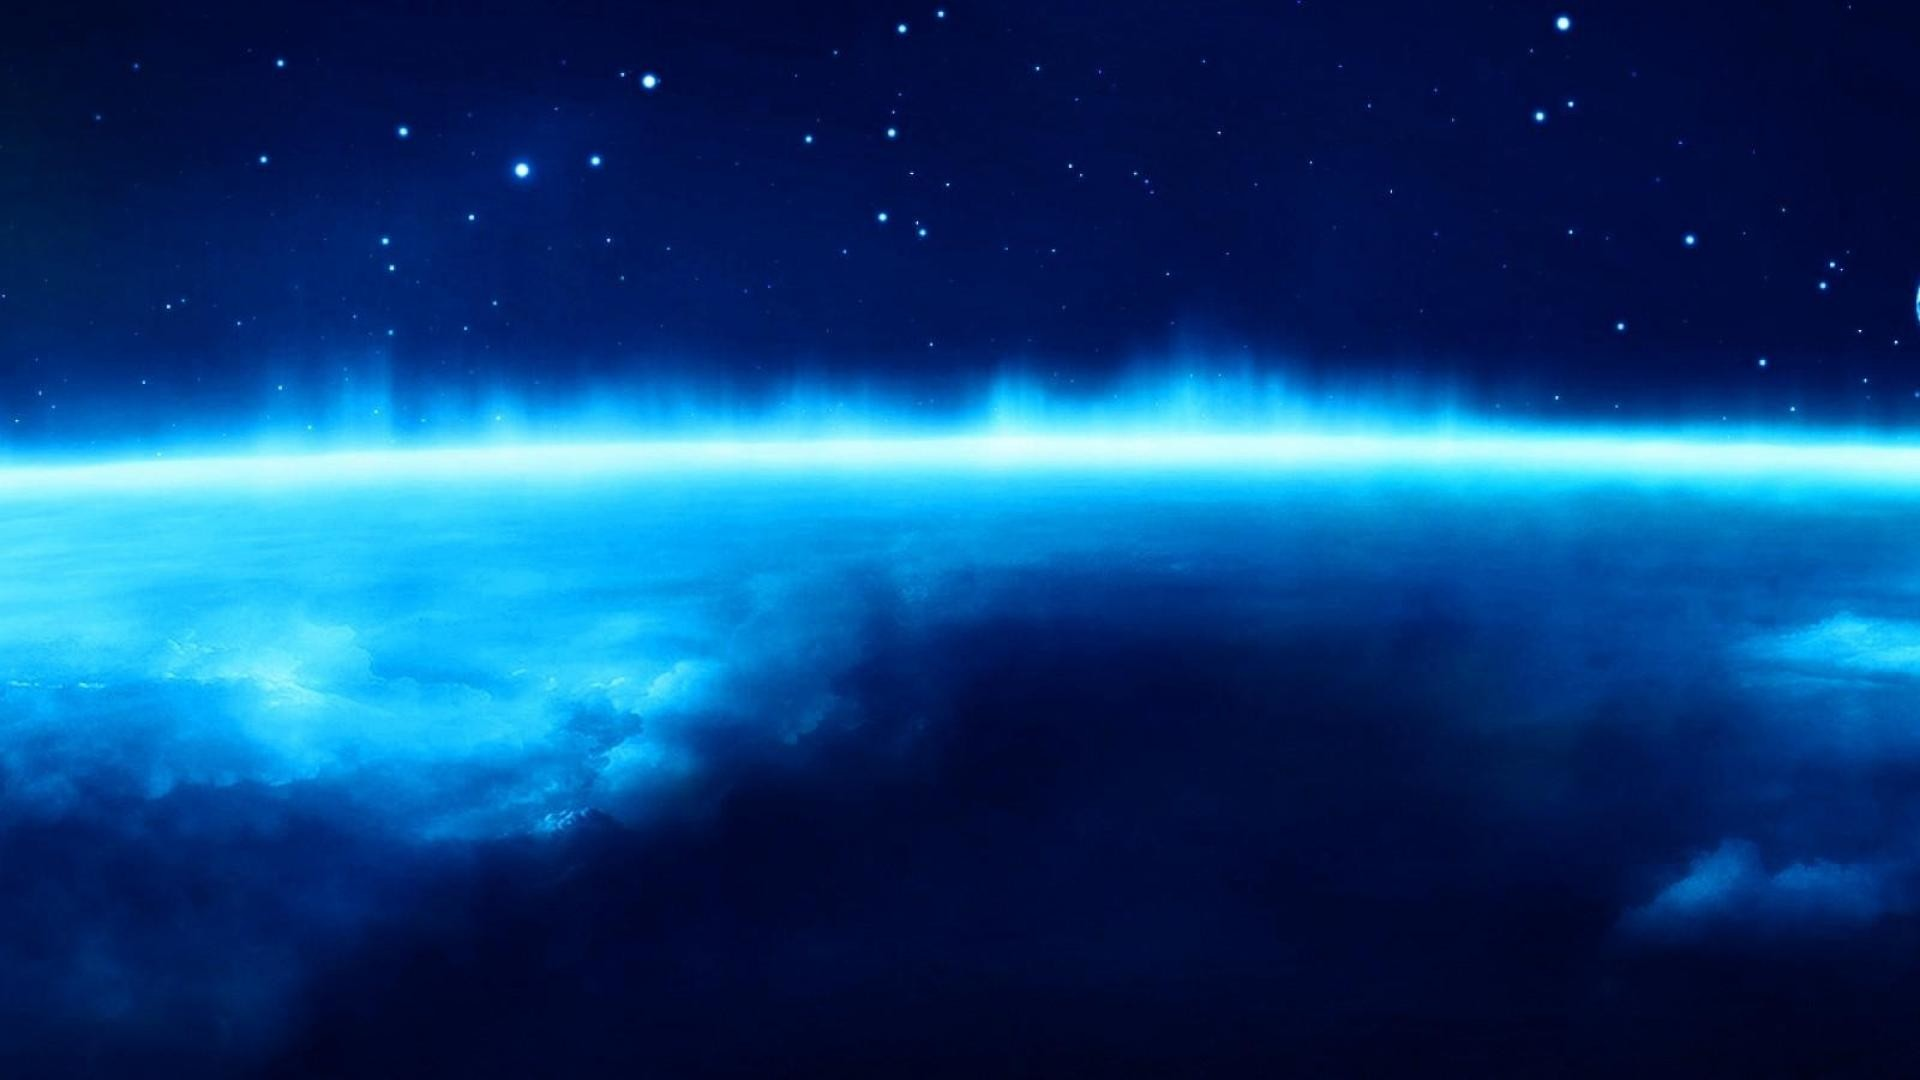 Blue Space Wallpaper 75 Images